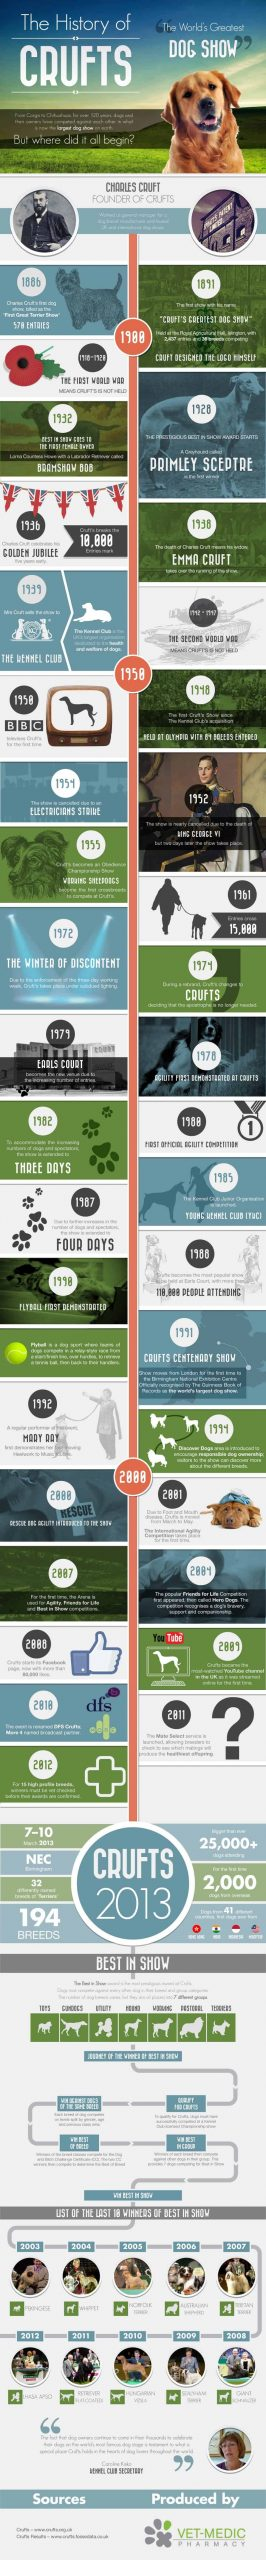 A History of Crufts